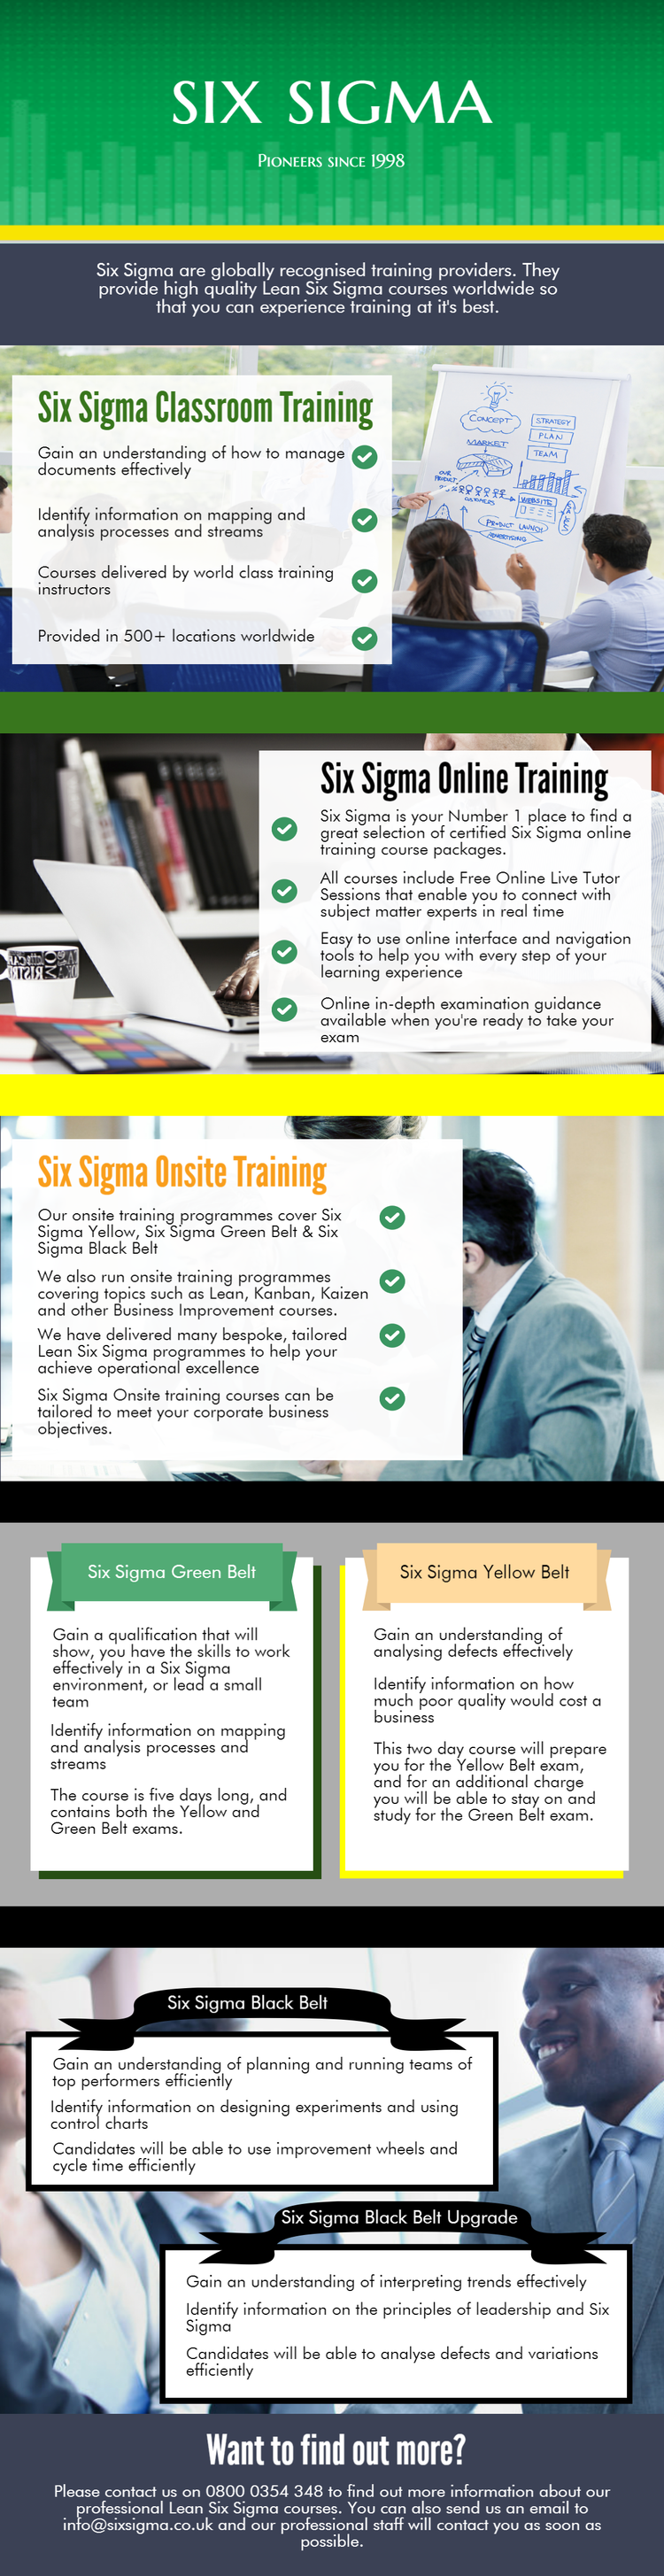 Six Sigma Infographic